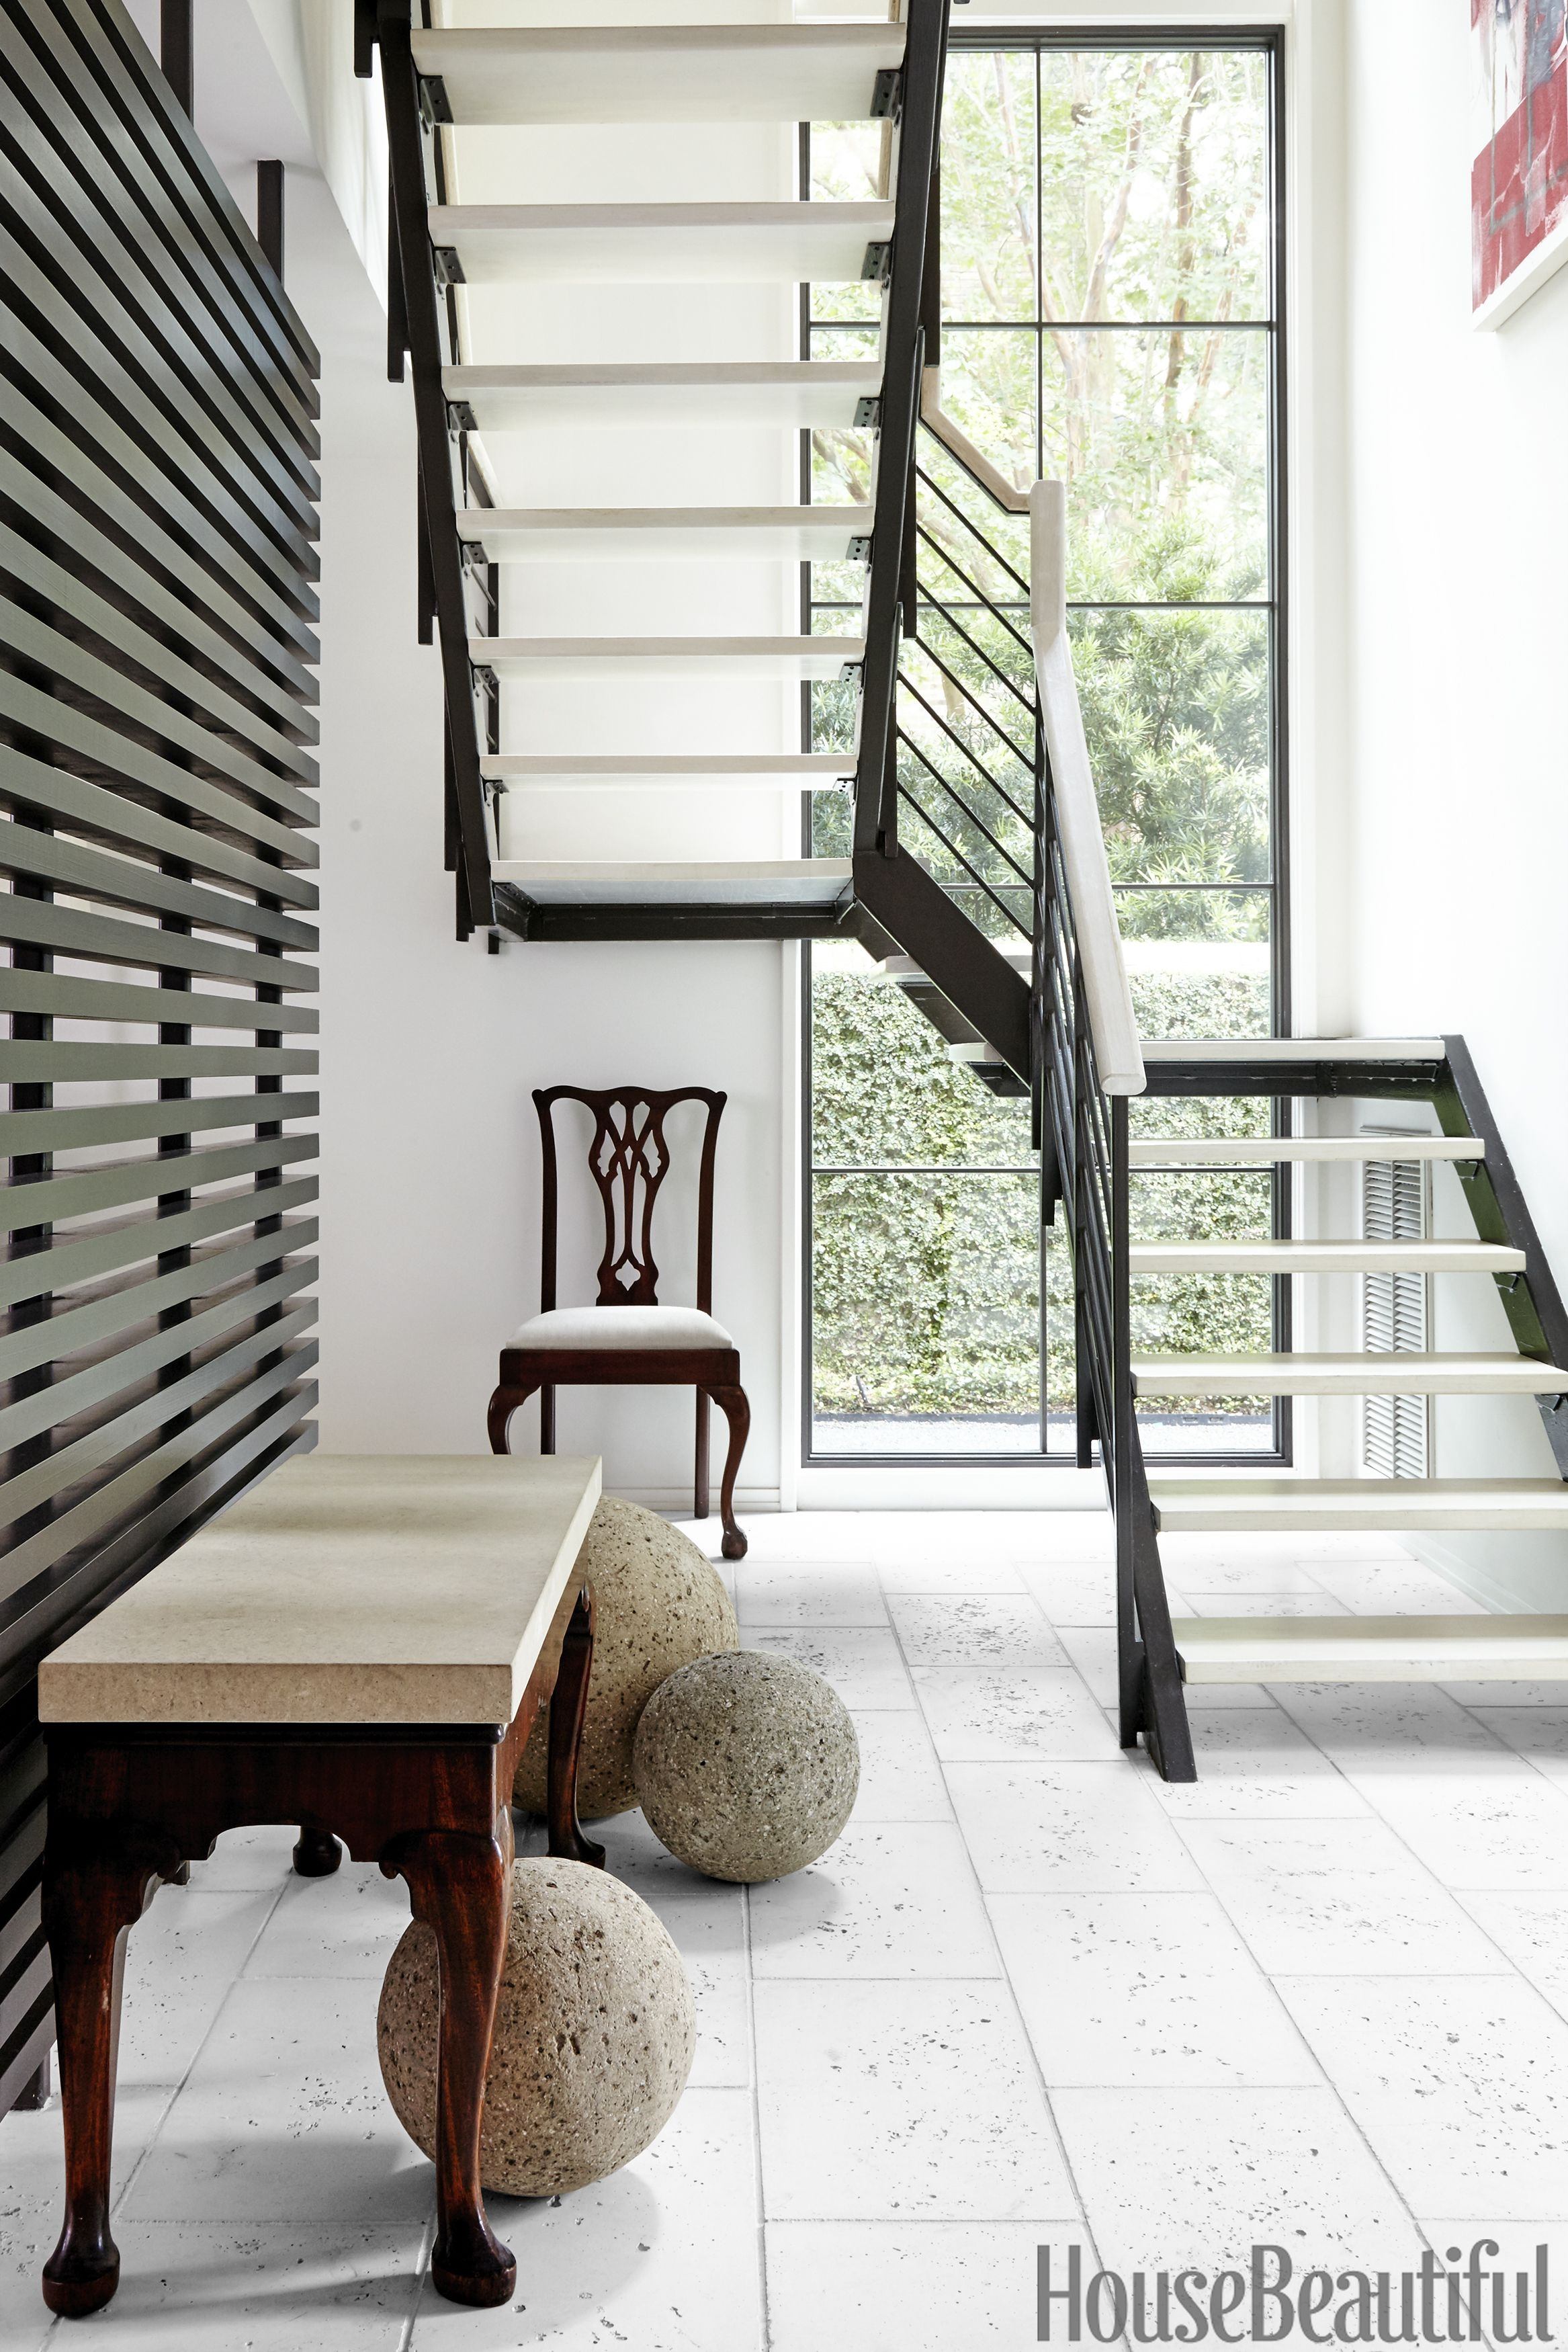 25 Unique Stair Designs Beautiful Stair Ideas For Your House | Outside Steps Design For Home | Garden | Second Floor | Low Cost | Main Entrance Step | Railing